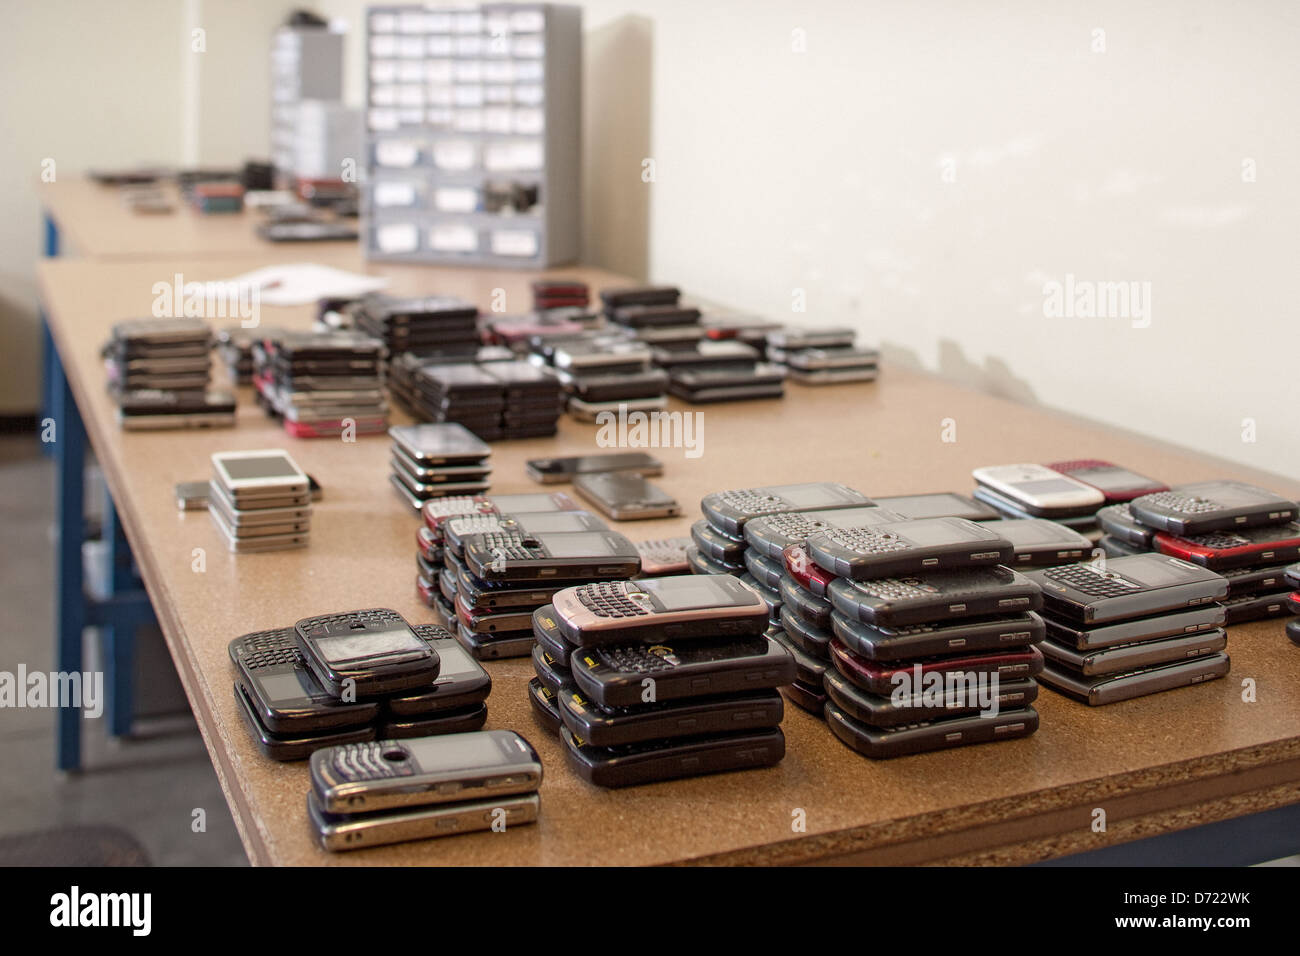 Stacks of cell phones ready to be tested in a electronics recycling center. - Stock Image